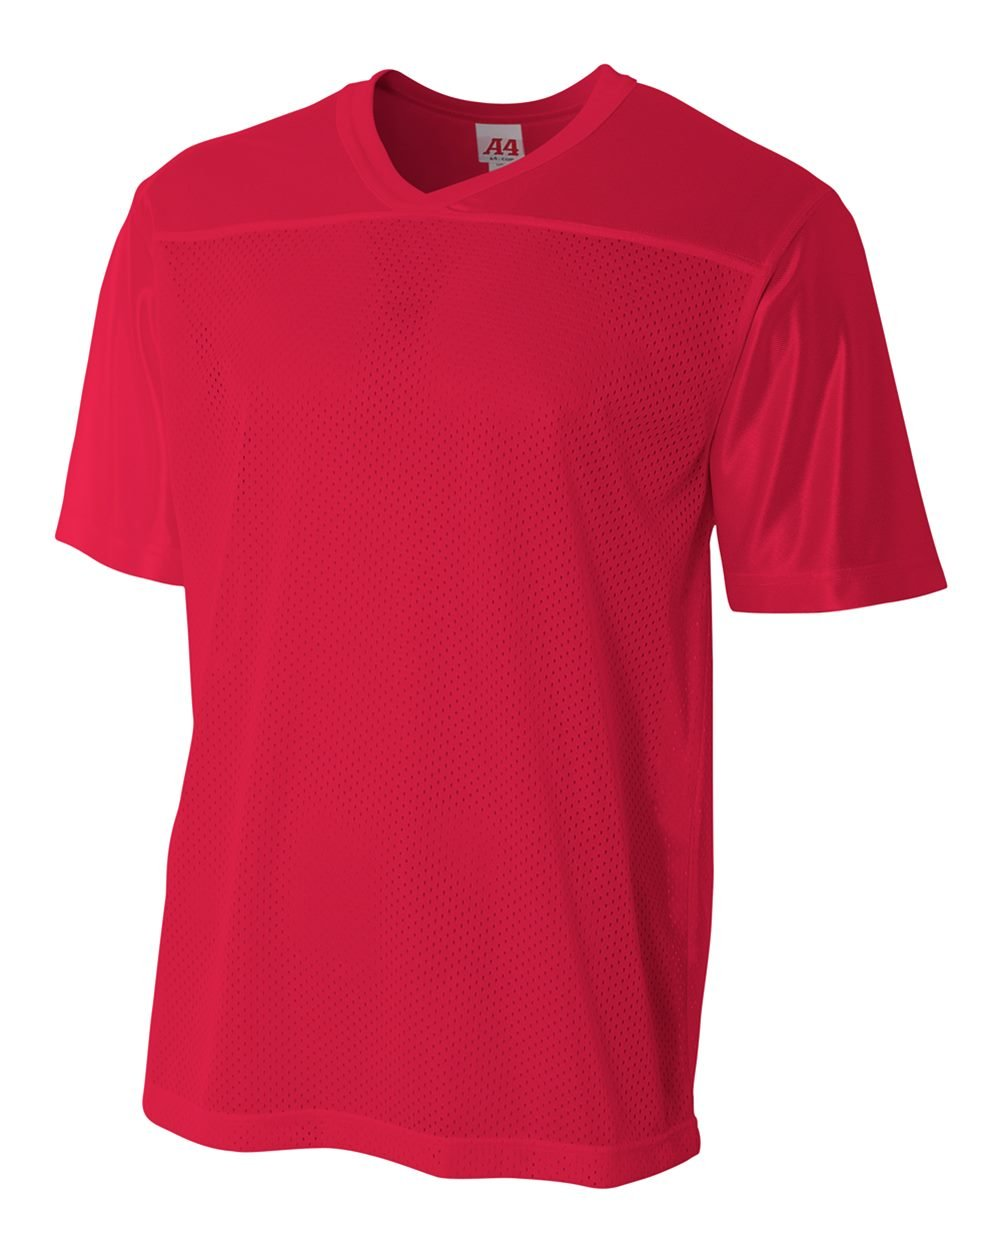 Youth Scarlet Large (Blank Back) Moisture Wicking V-Neck Football Jersey